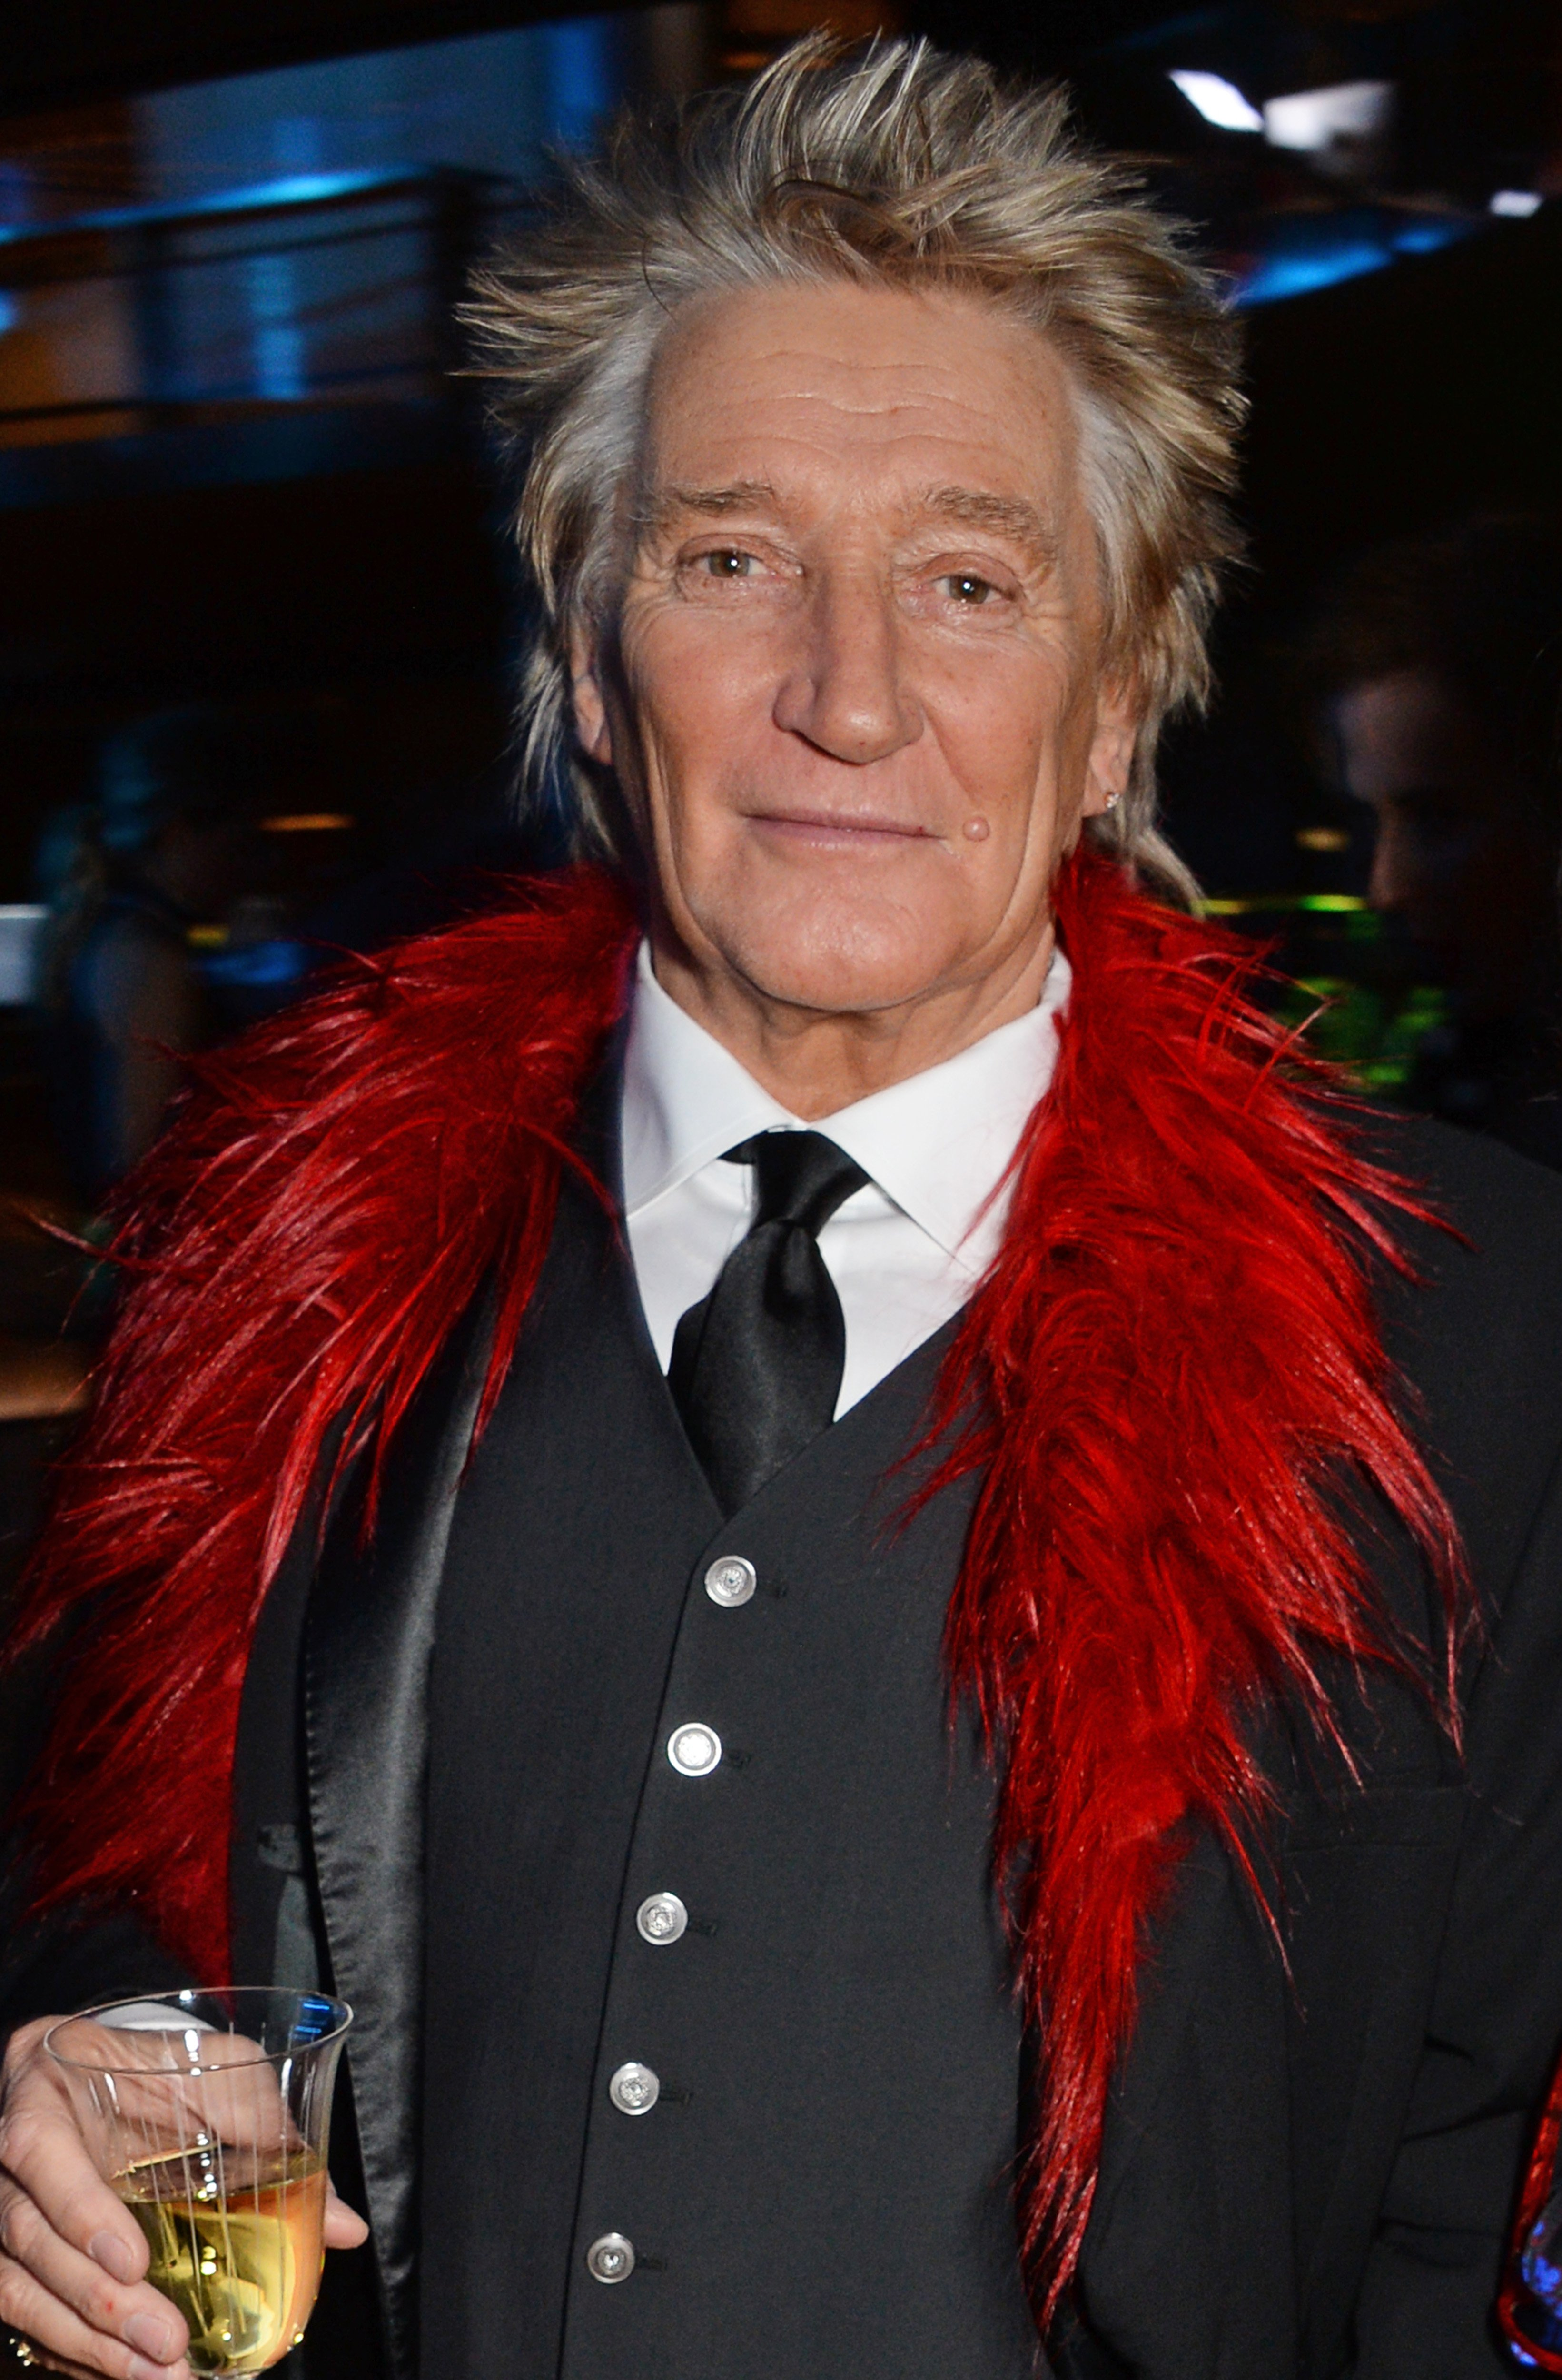 Sir Rod Stewart attends the Bloomberg x Vanity Fair Climate Exchange gala dinner 2018 at Bloomberg London on December 11, 2018 | Photo: GettyImages